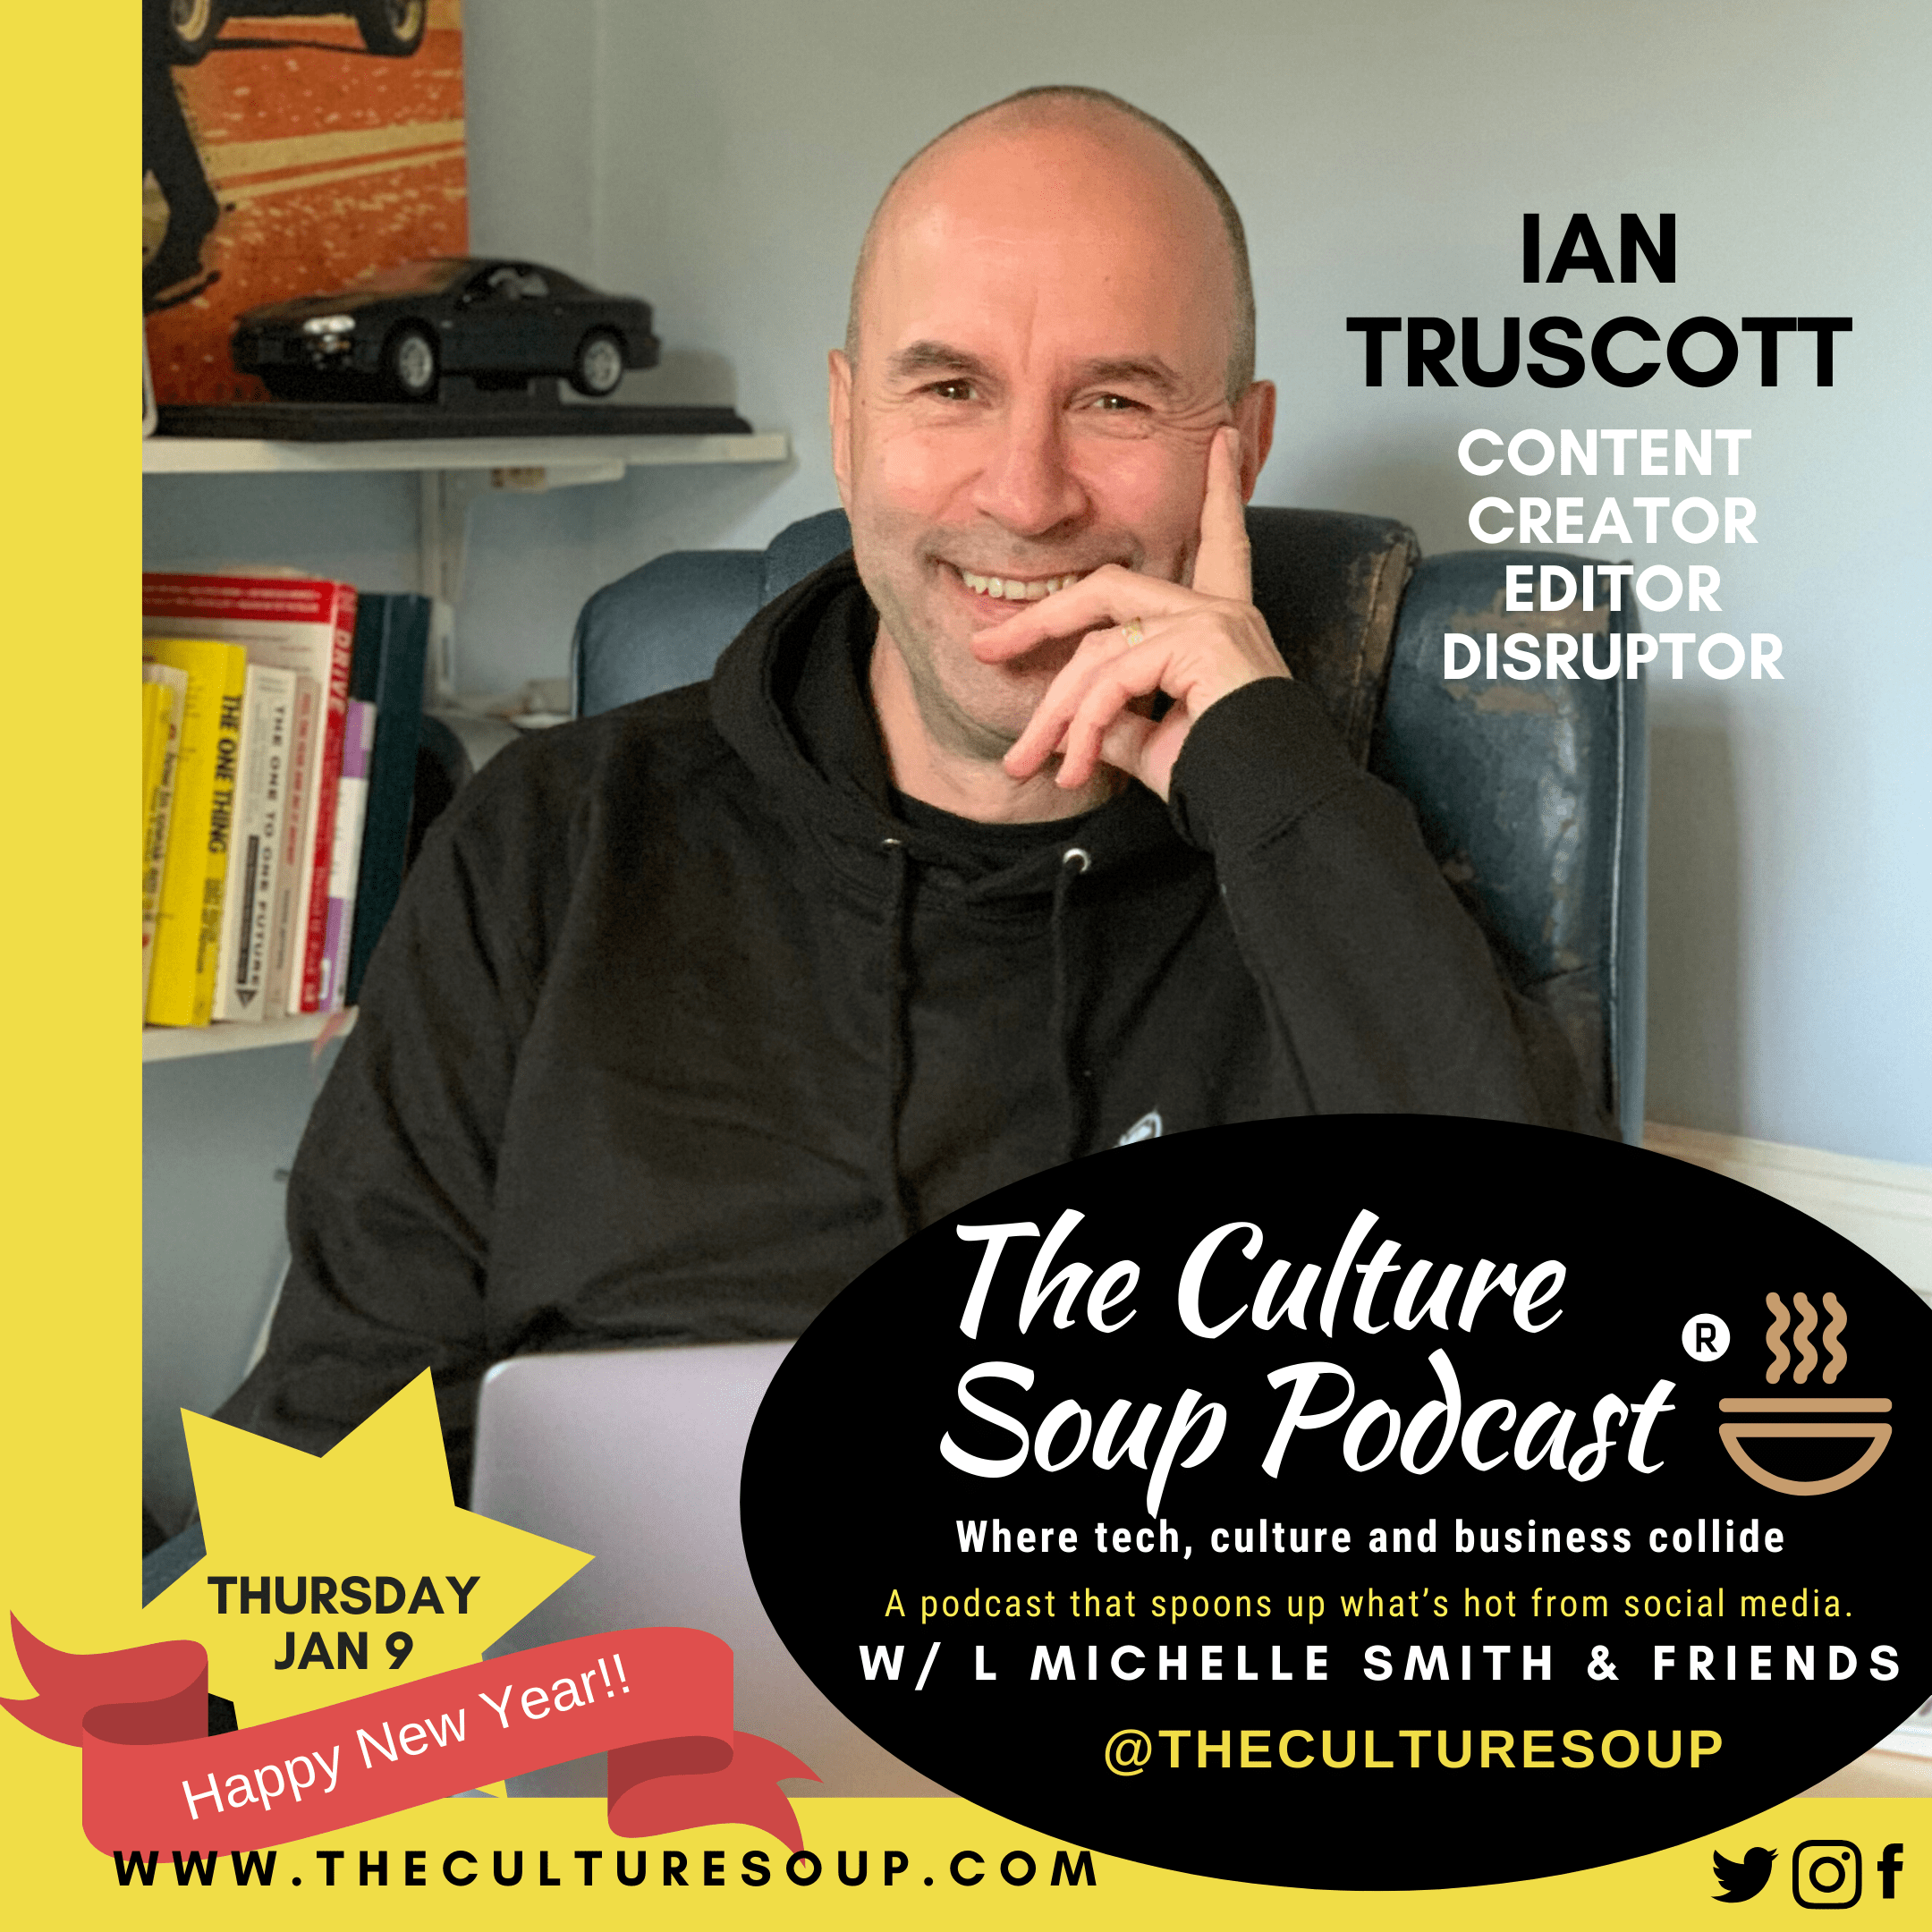 Ep 73: Looking into Marketing's Crystal Ball with Ian Truscott